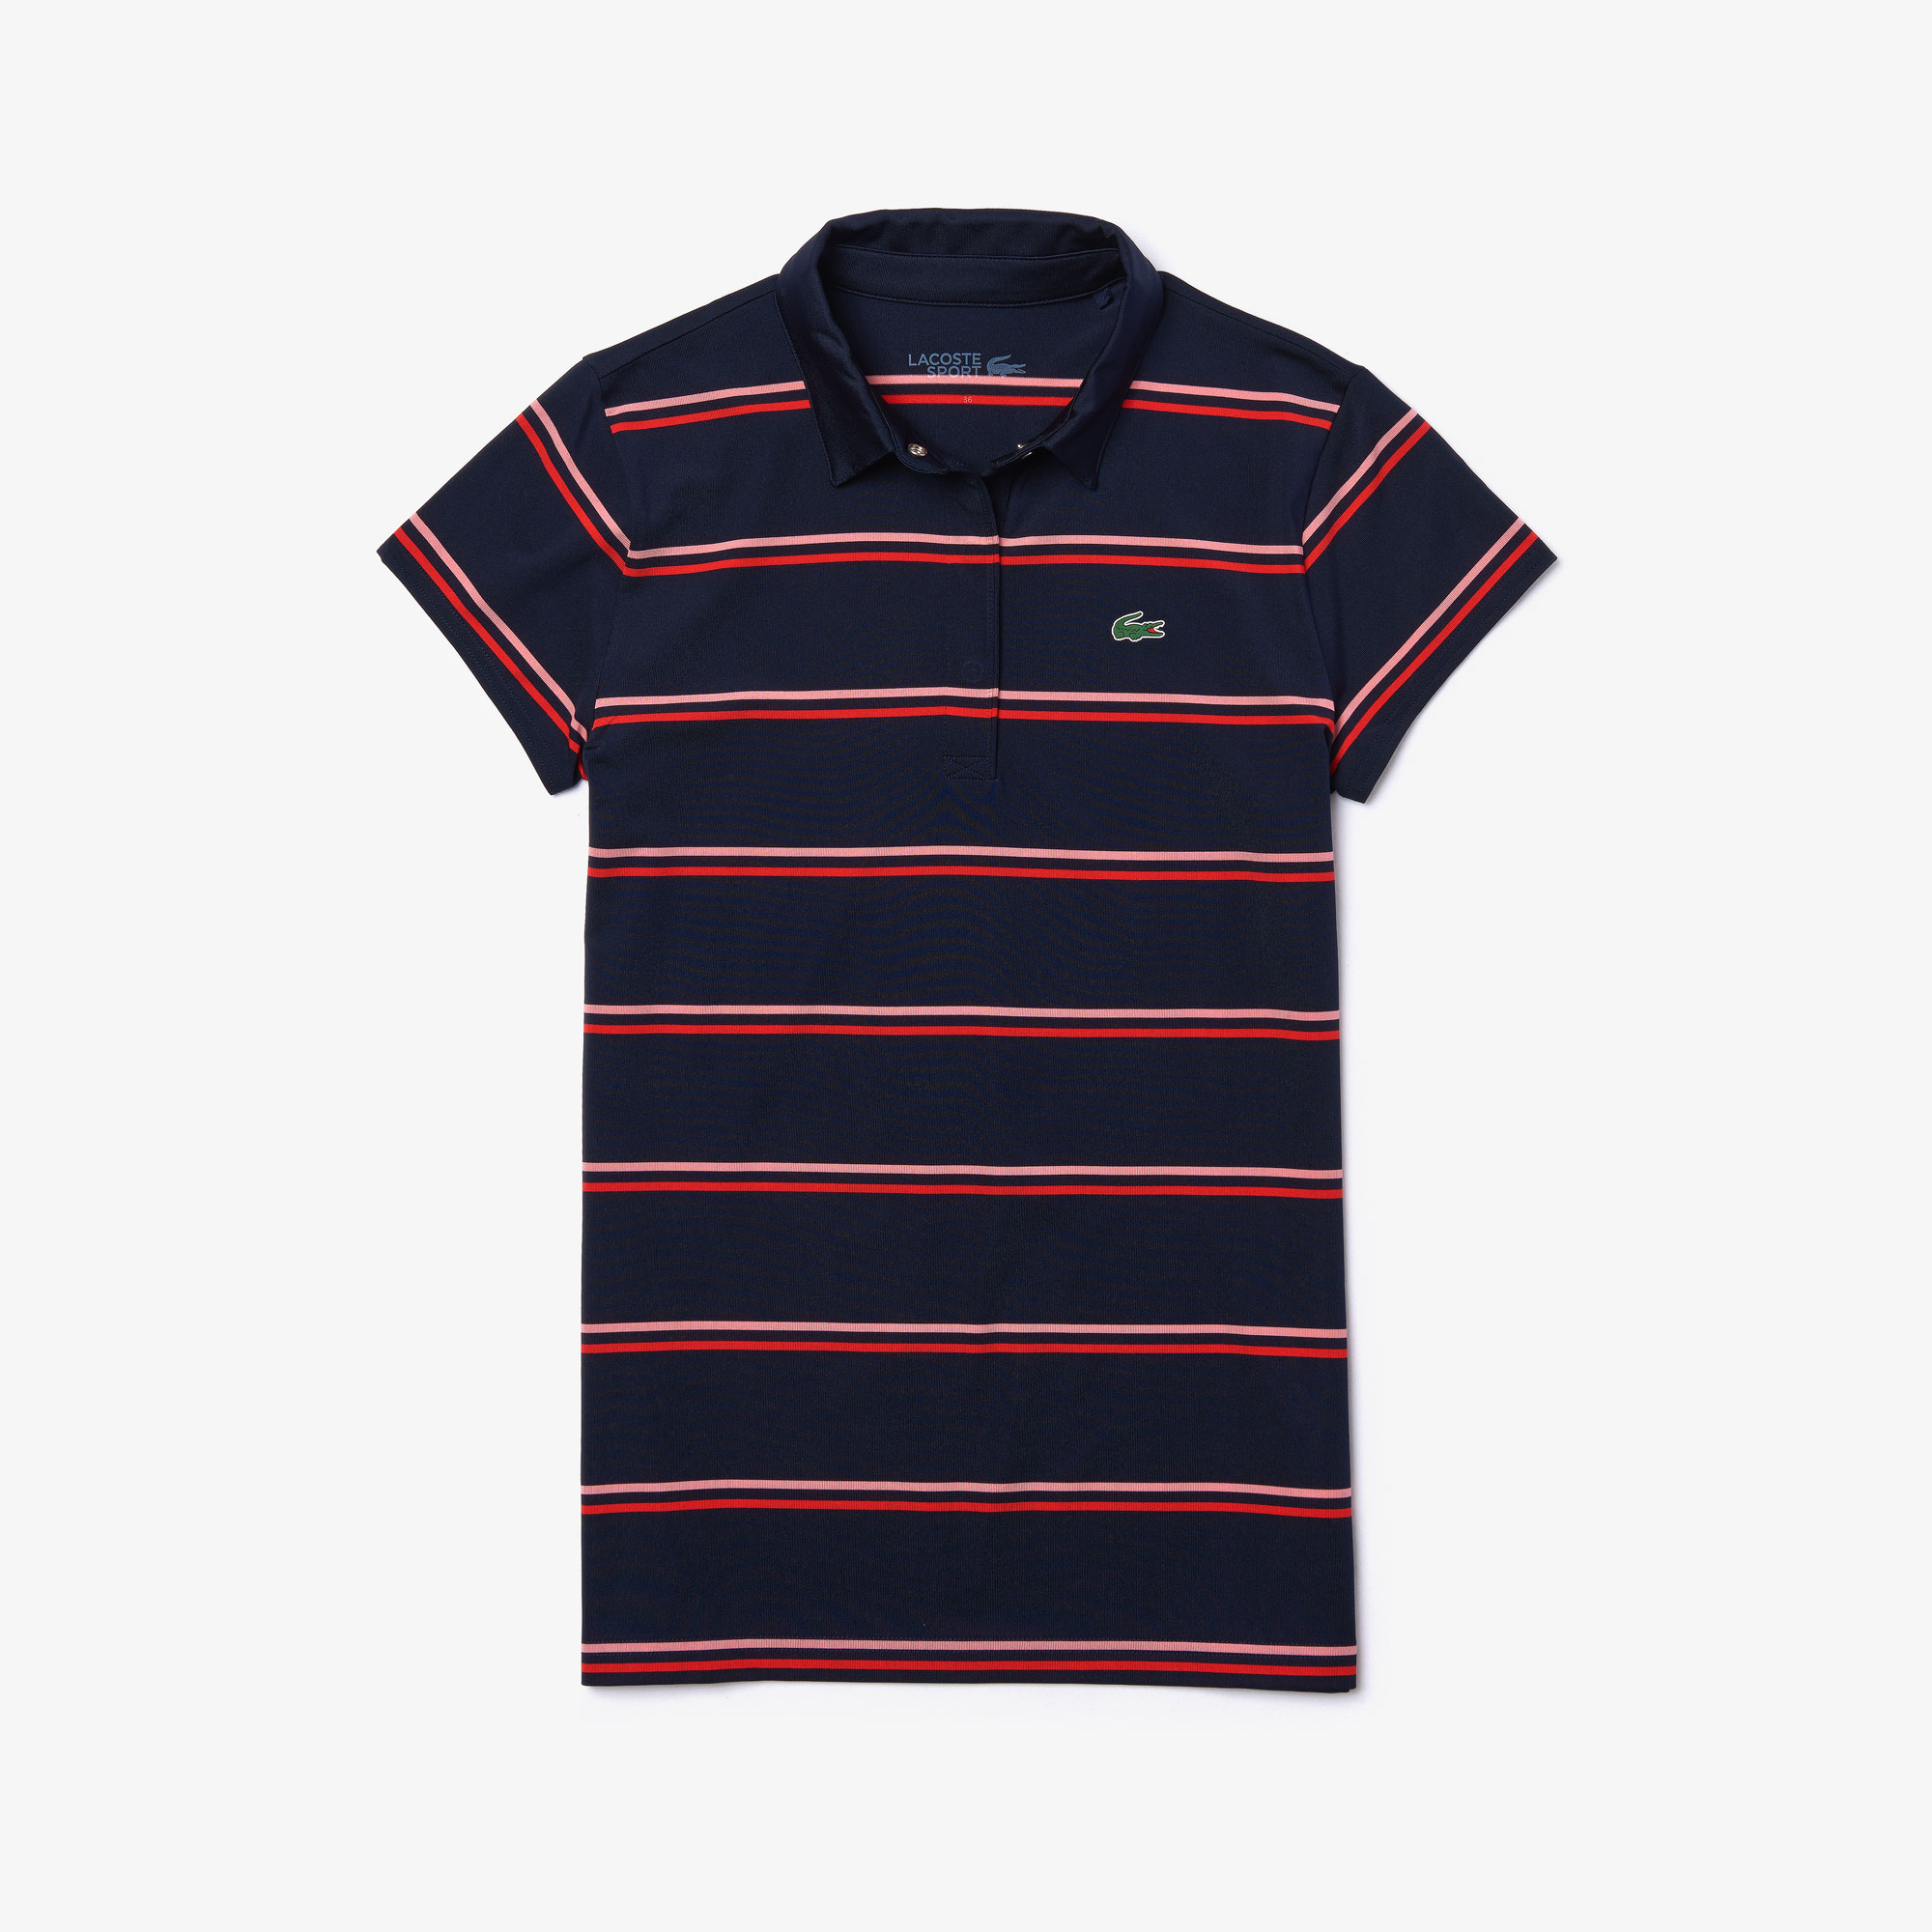 Lacoste Tops Women's SPORT Breathable Stretch Jersey Golf Polo